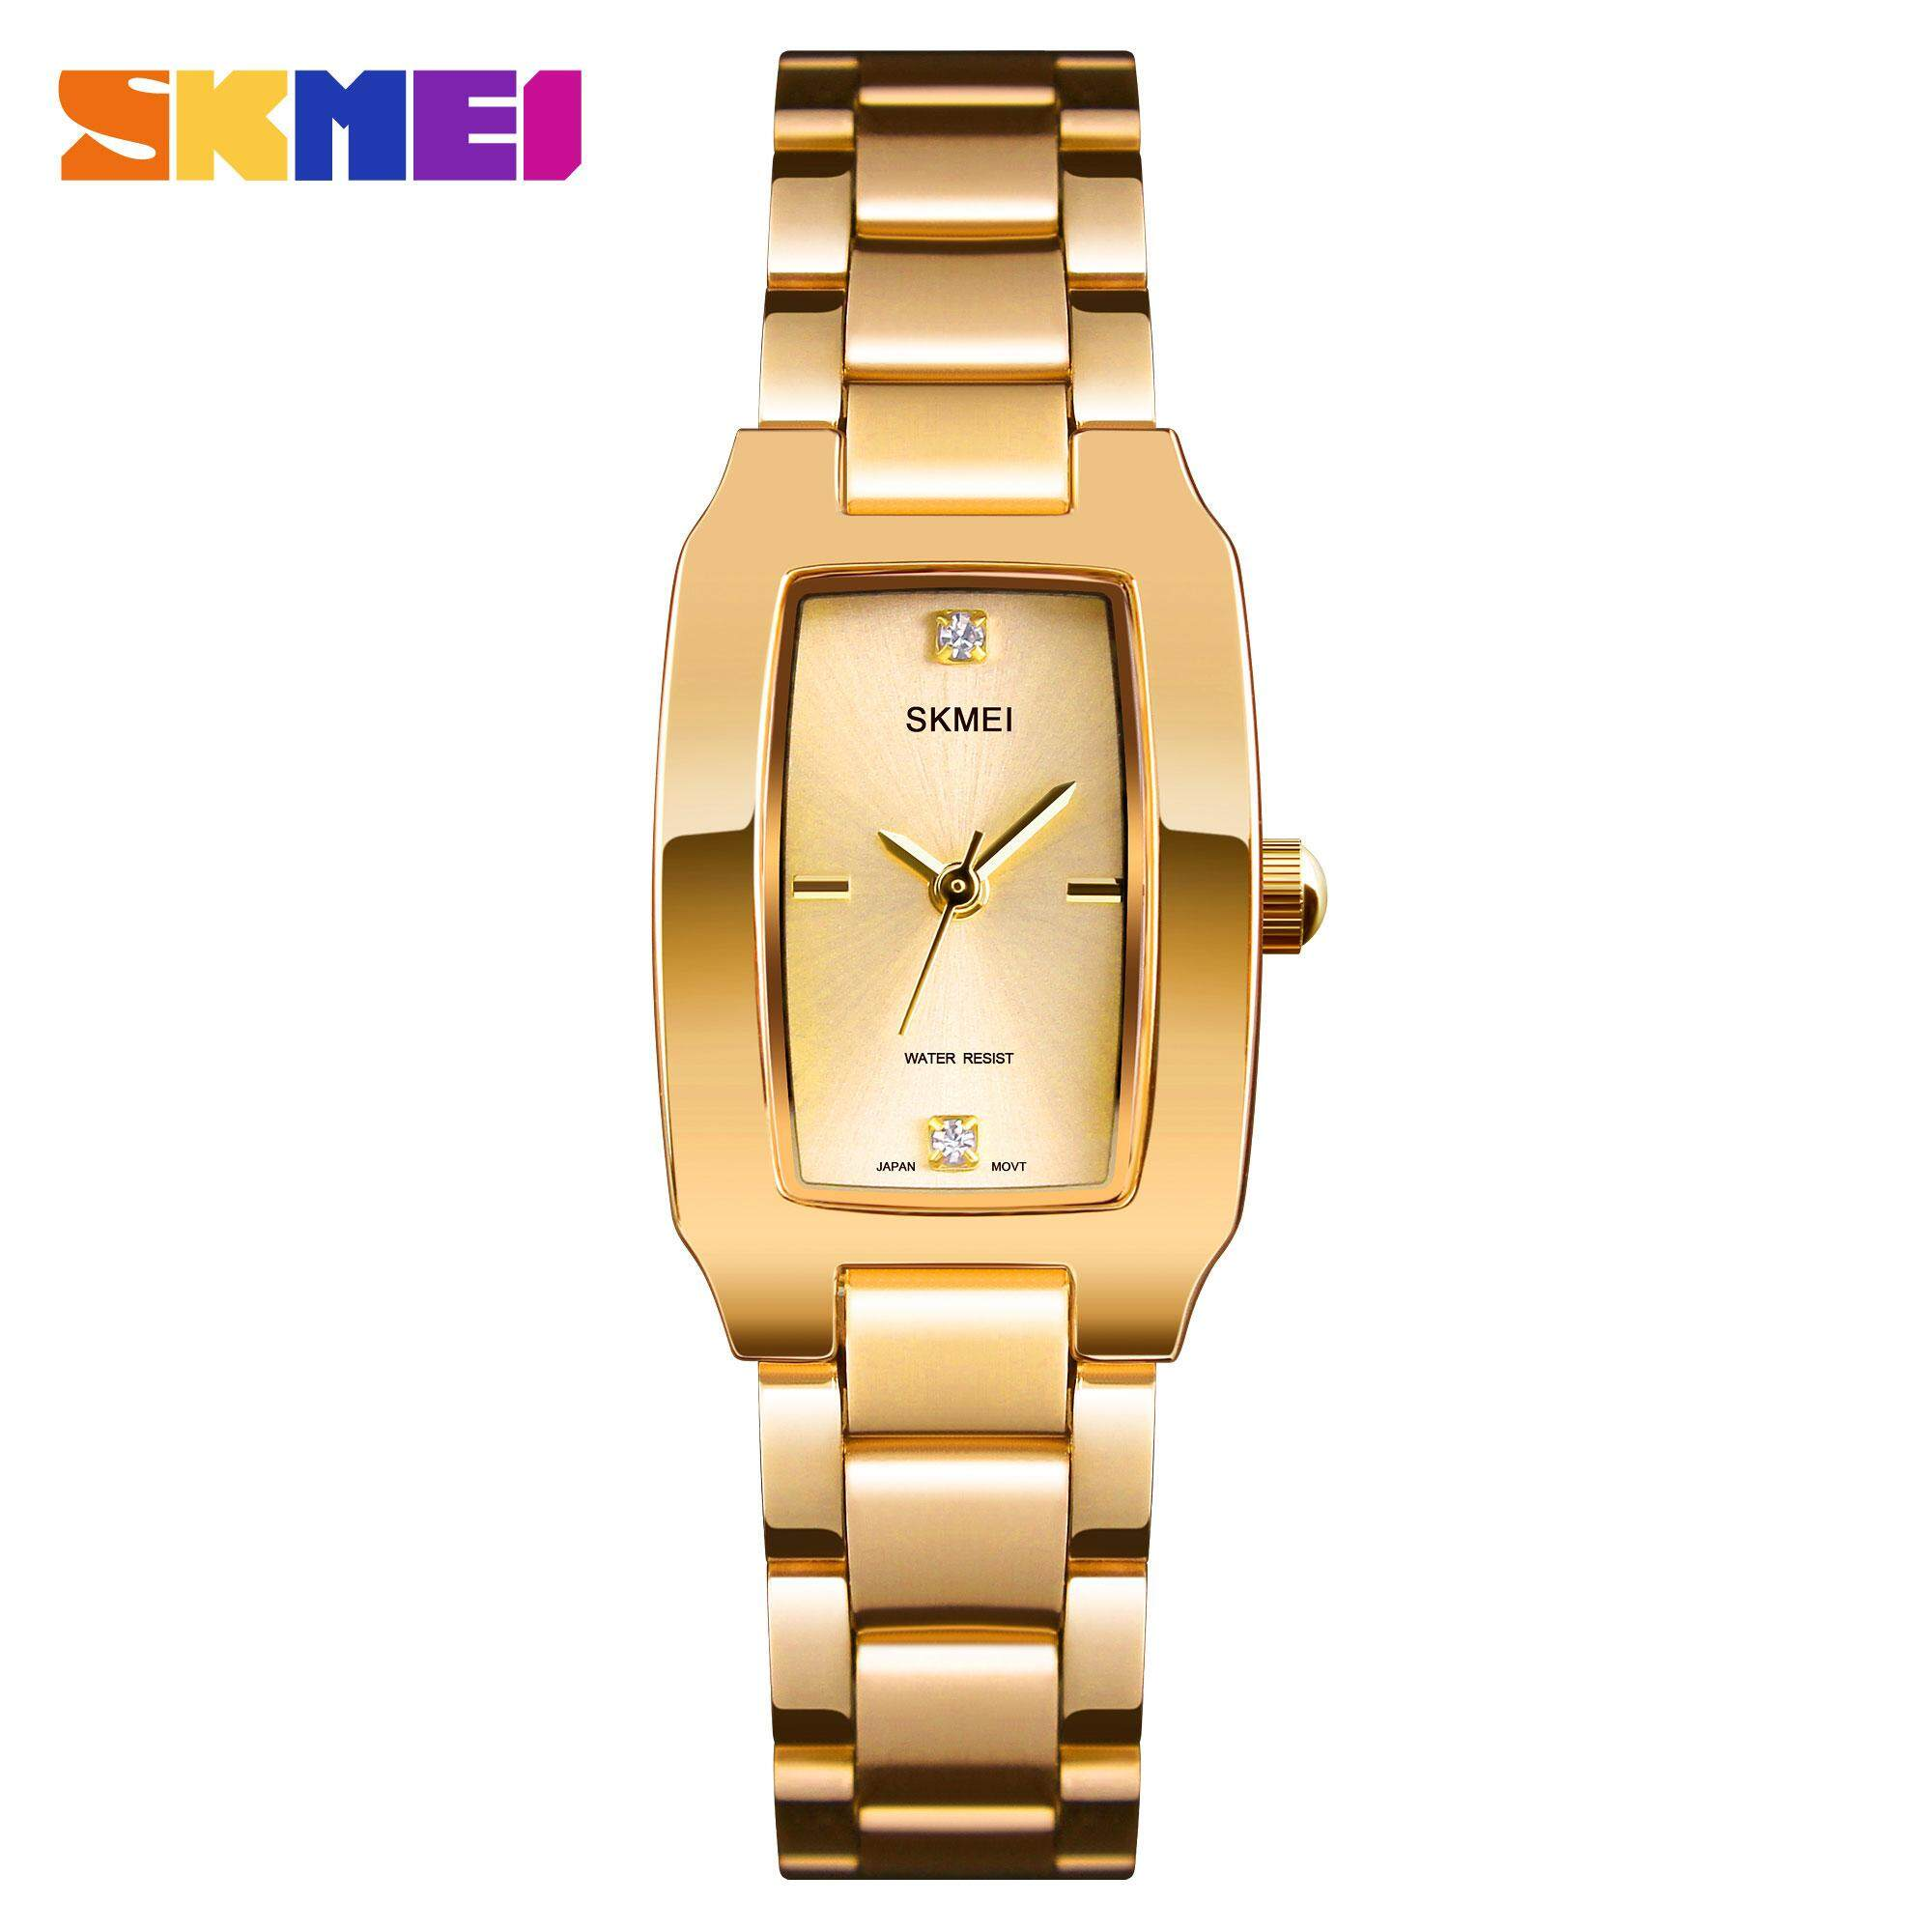 405516e20 SKMEI New Women Fashion Watches Quartz Waterproof Watch Stainless Steel  Simple Elegant Wristwatches Ladies Clock 1400